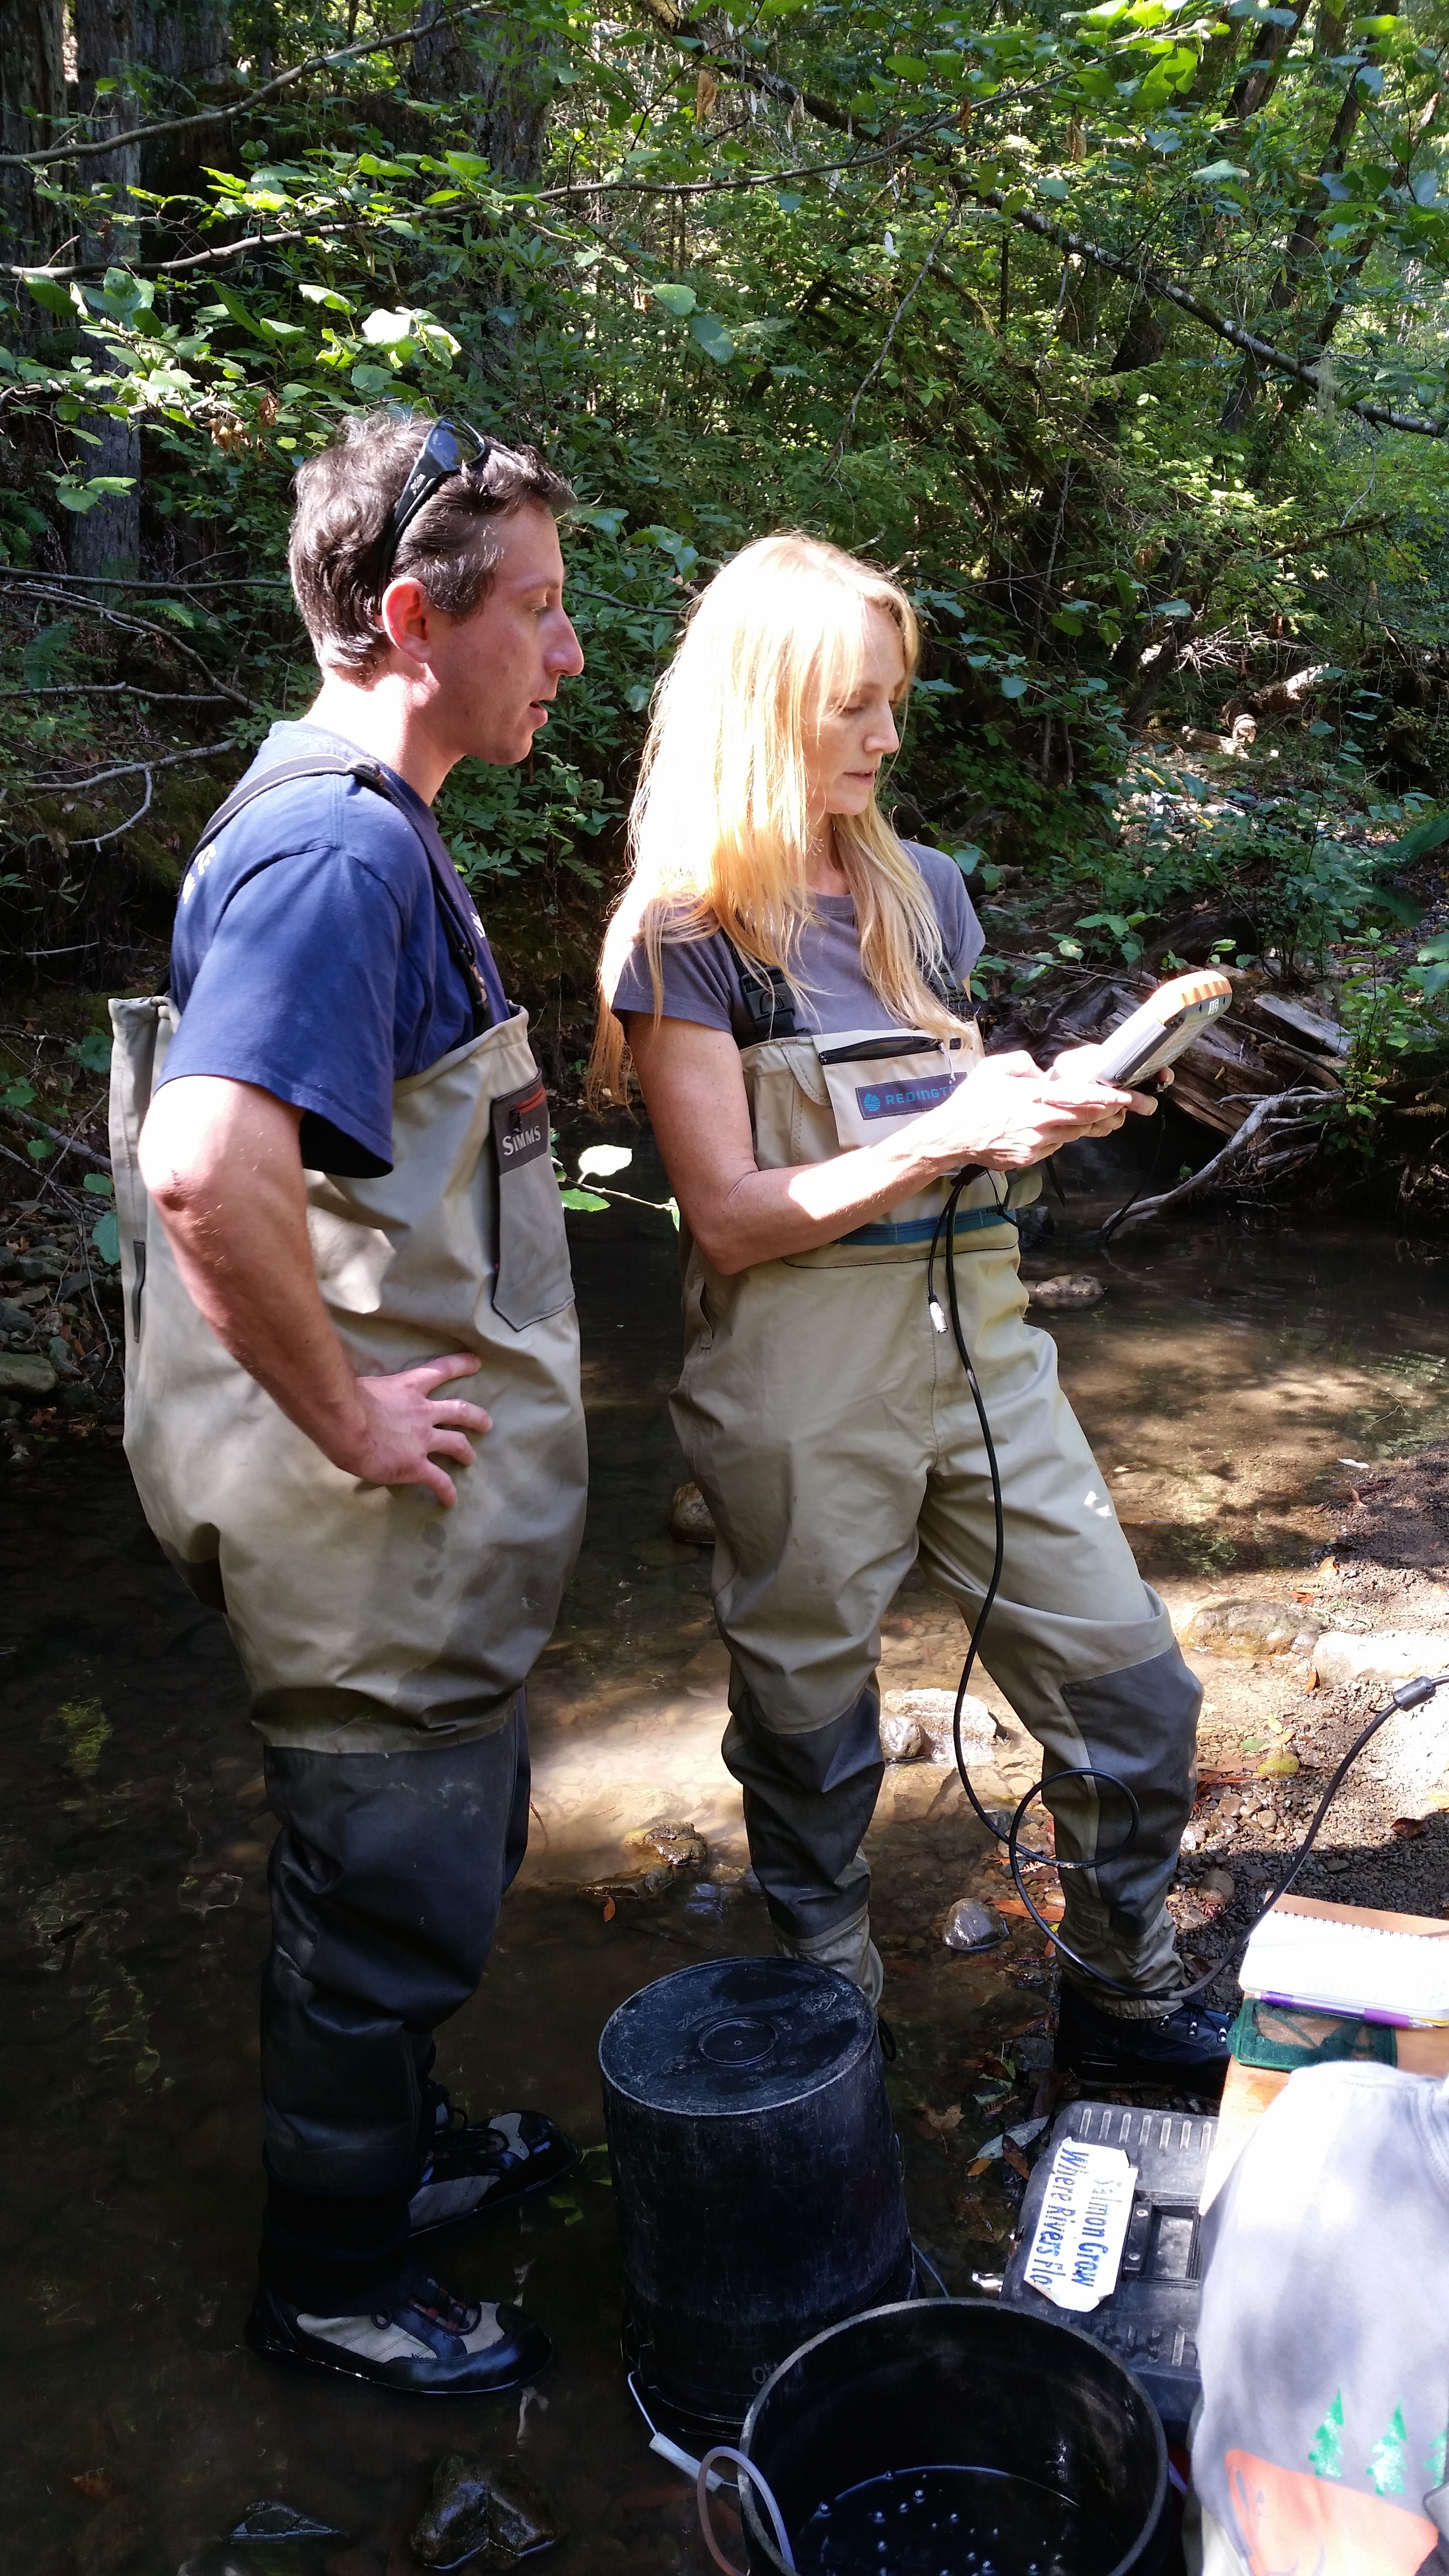 Fisheries biologists Andrew Bartshire and Sarah Nossaman Pierce of California Sea Grant monitor water quality in Mill Creek in October 2015. Photo Credit: California Sea Grant